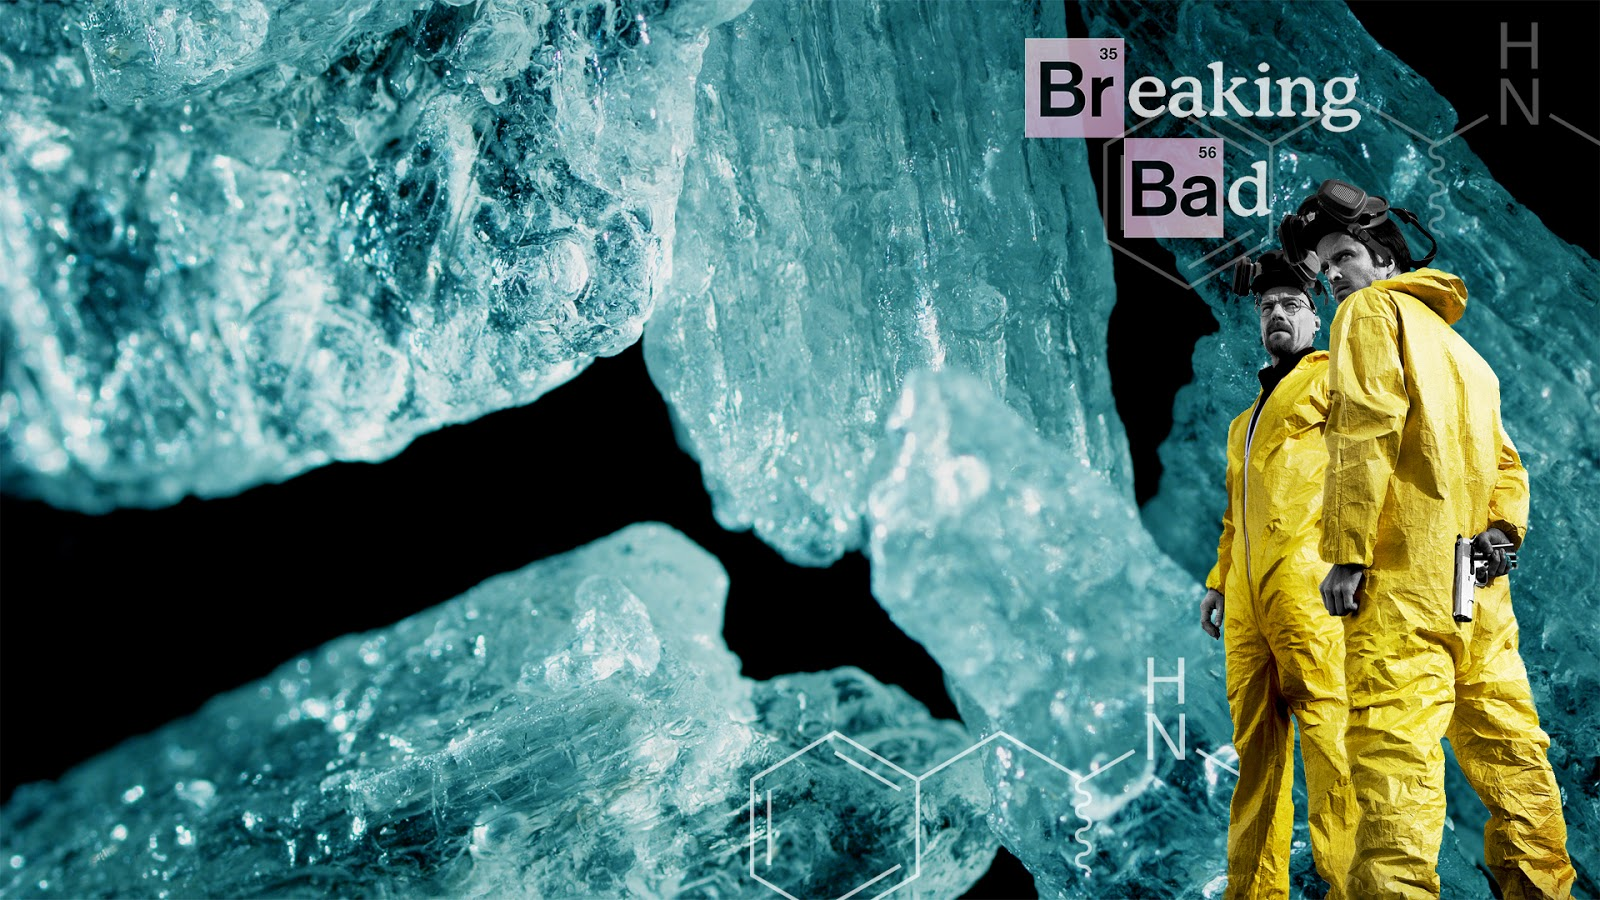 breaking bad 50 wallpapers - photo #20